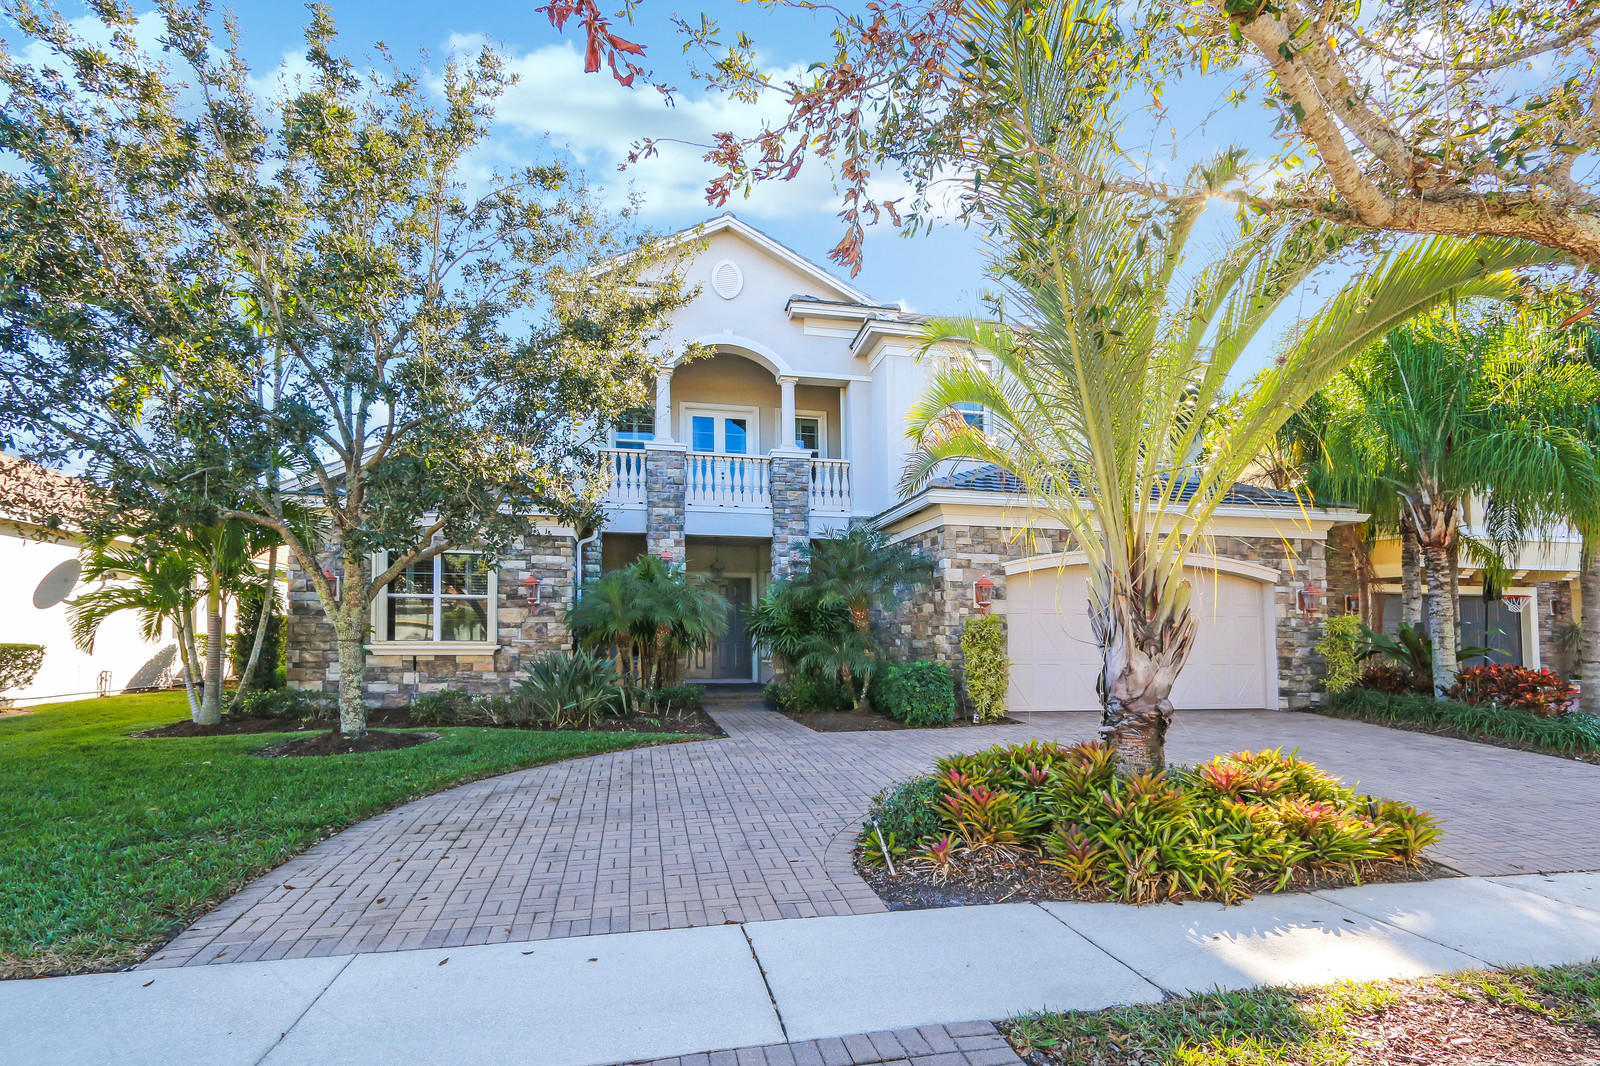 8454 Butler Greenwood Drive - Royal Palm Beach, Florida